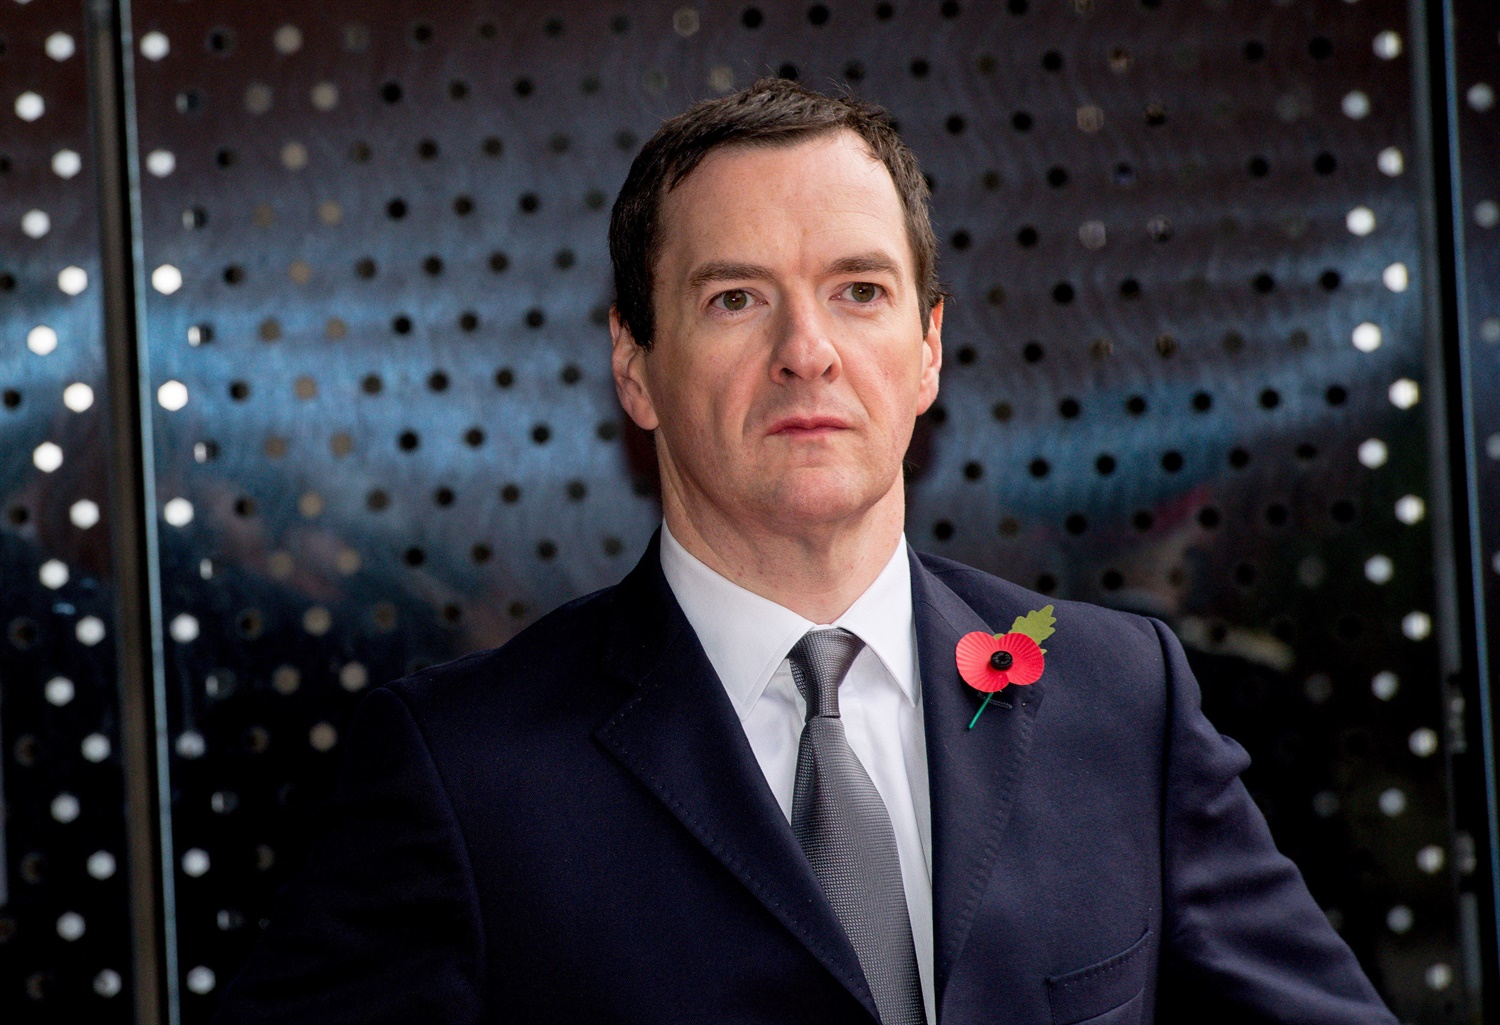 Capital spending increase means HS2 construction can begin – Osborne